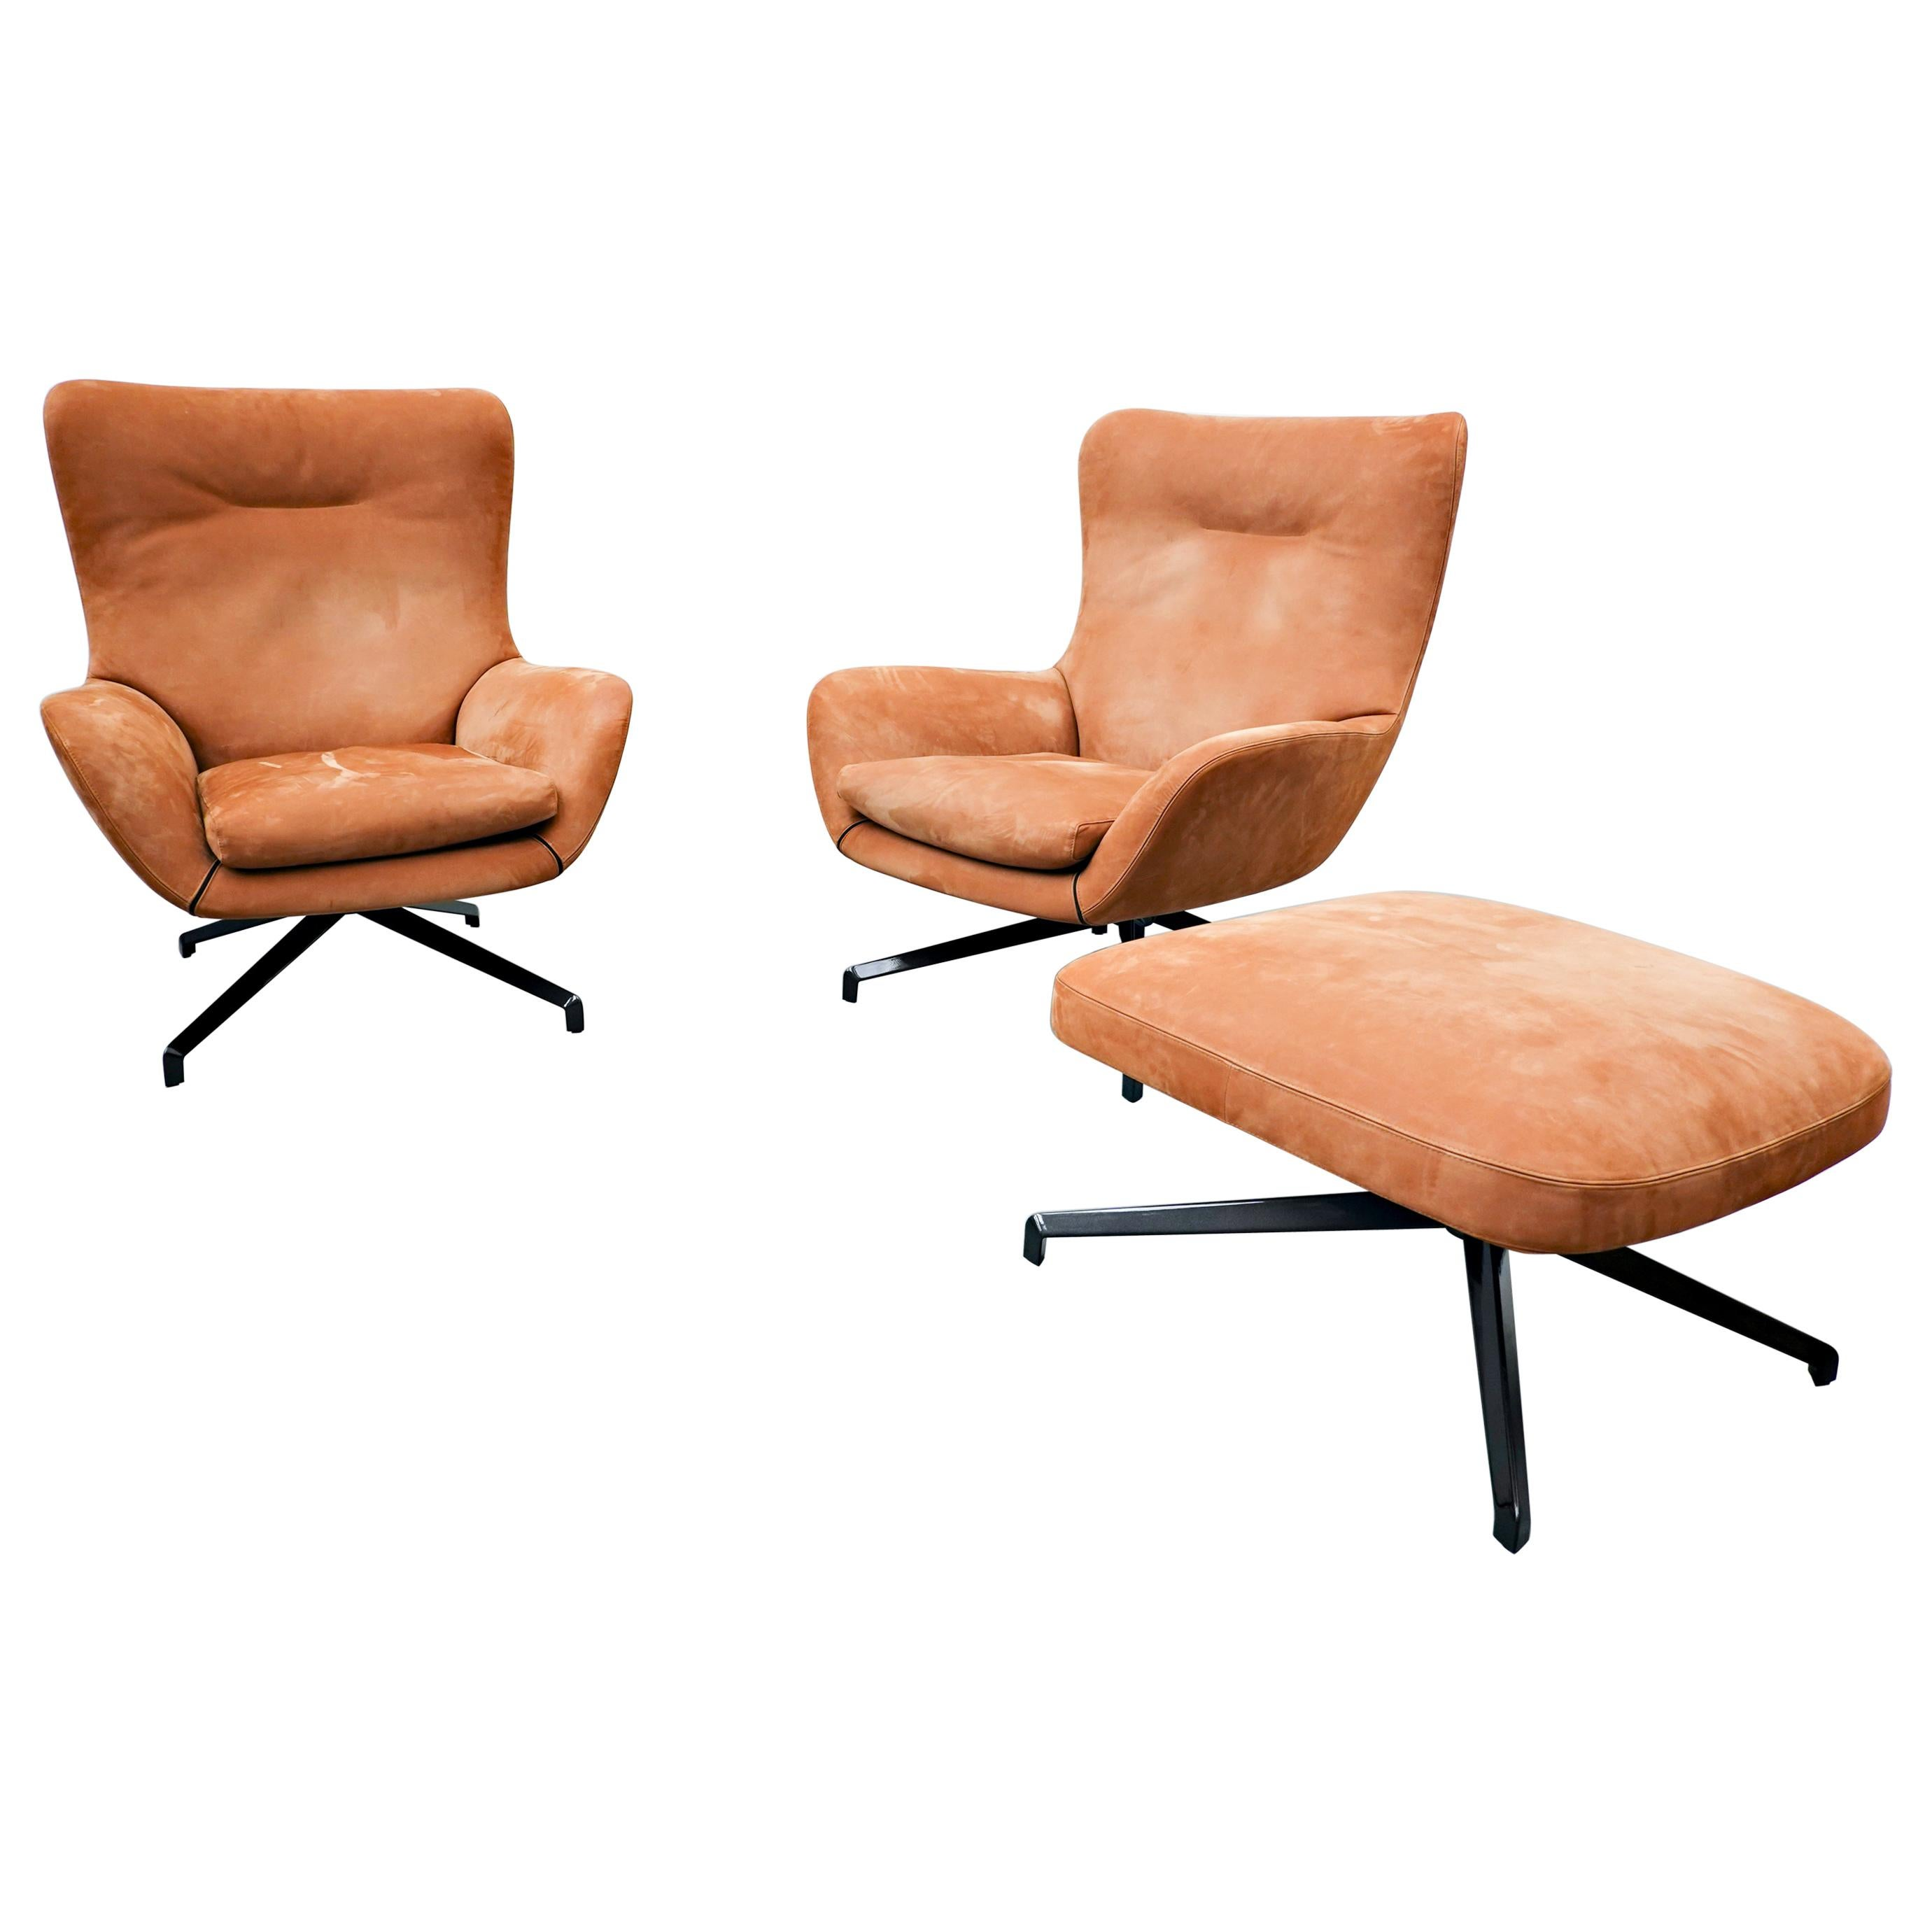 Pair of 'Jensen' Armchairs and Ottoman by Rodolfo Dordoni for Minotti